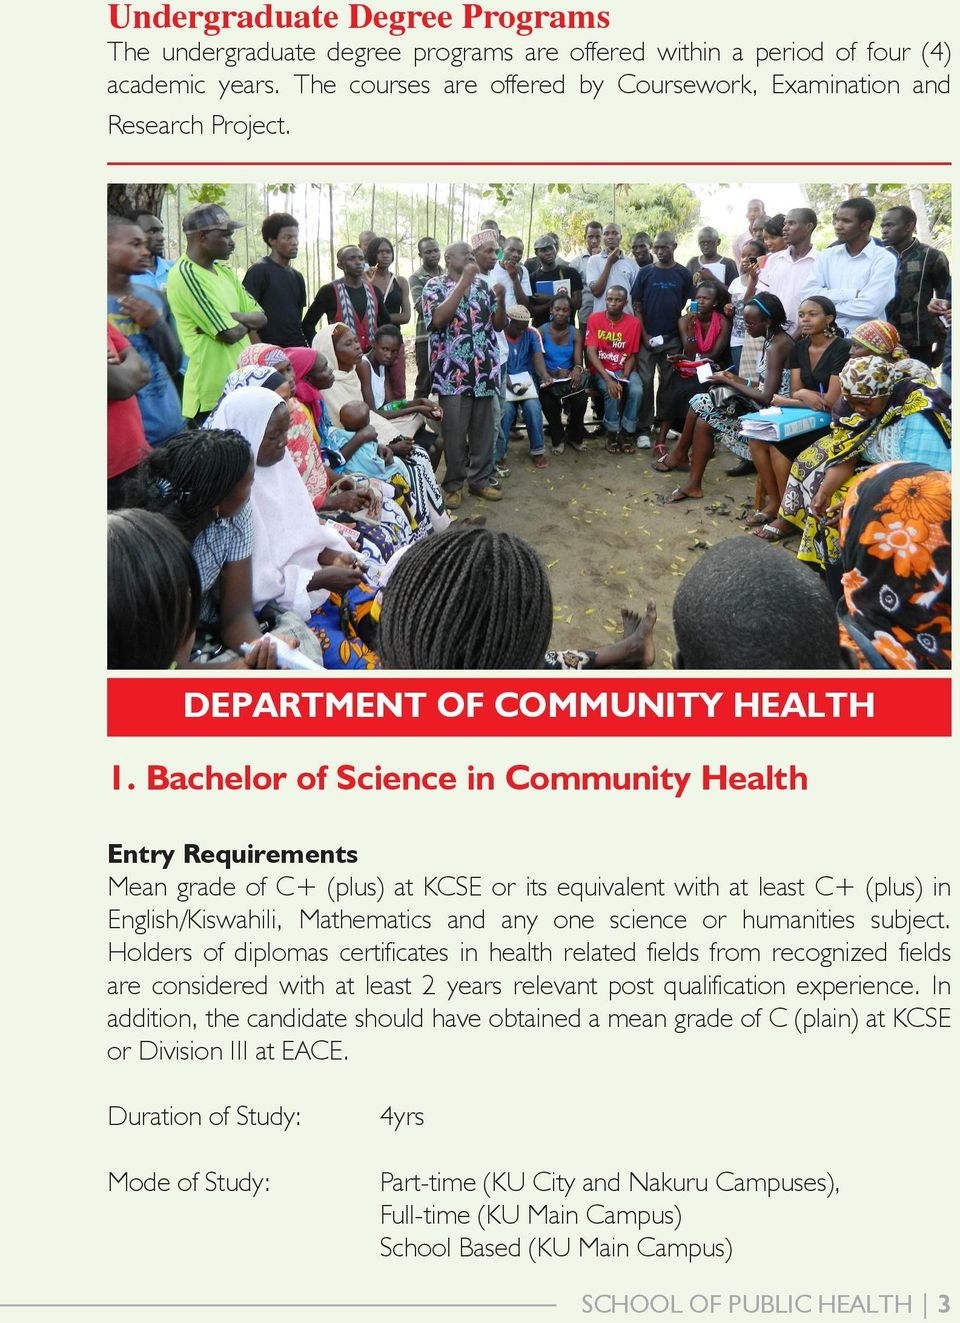 Bachelor of Science in Community Health Mean grade of C+ (plus) at KCSE or its equivalent with at least C+ (plus) in English/Kiswahili, Mathematics and any one science or humanities subject.